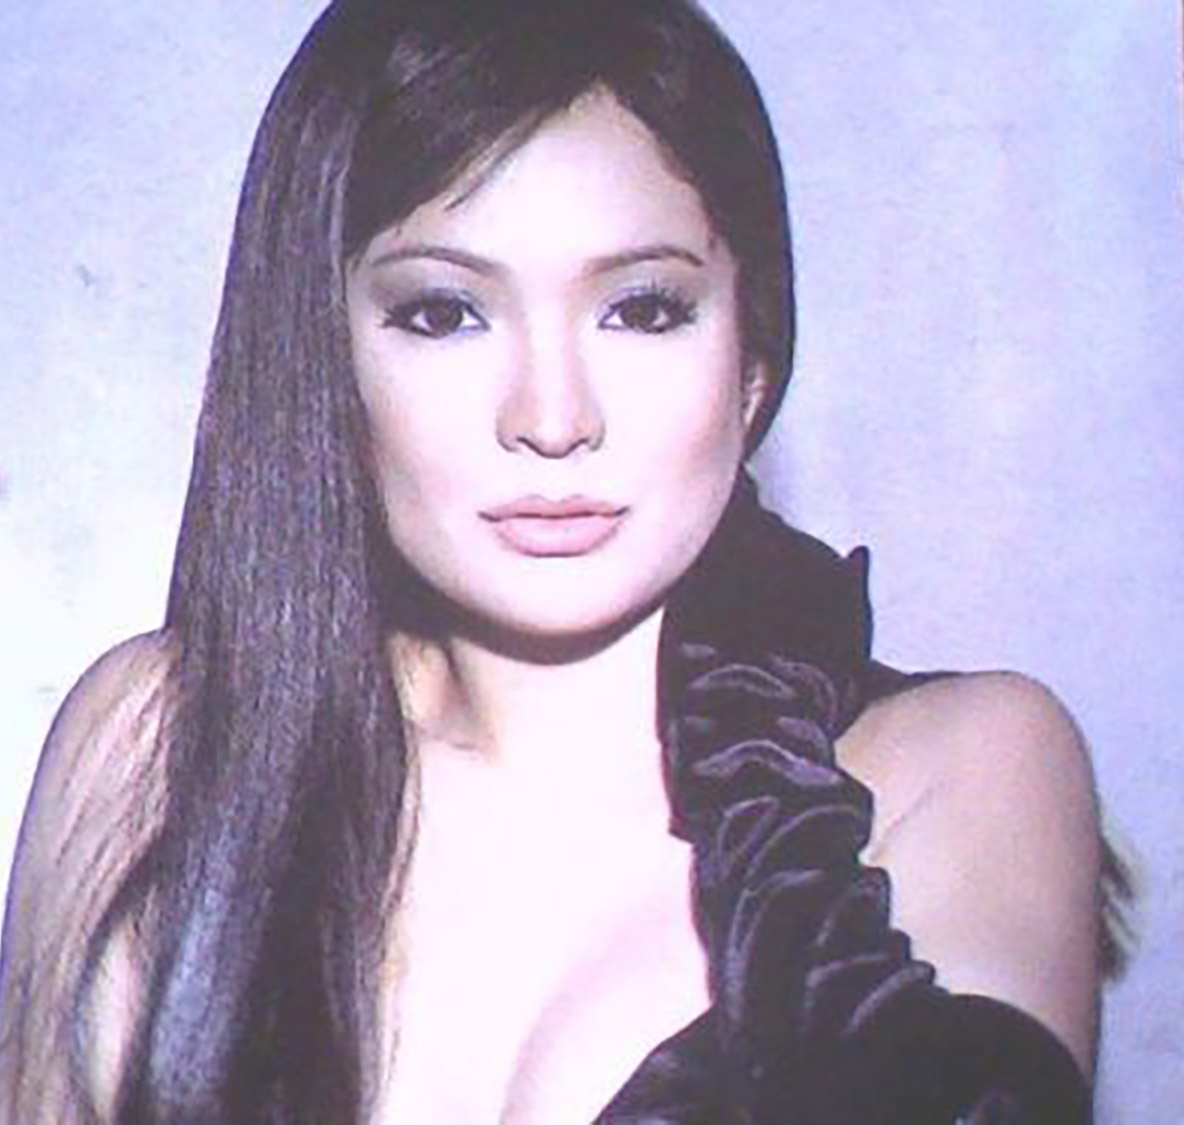 Amanda Page Real Name the sex sirens of philippine cinema part 2: 1990s-present